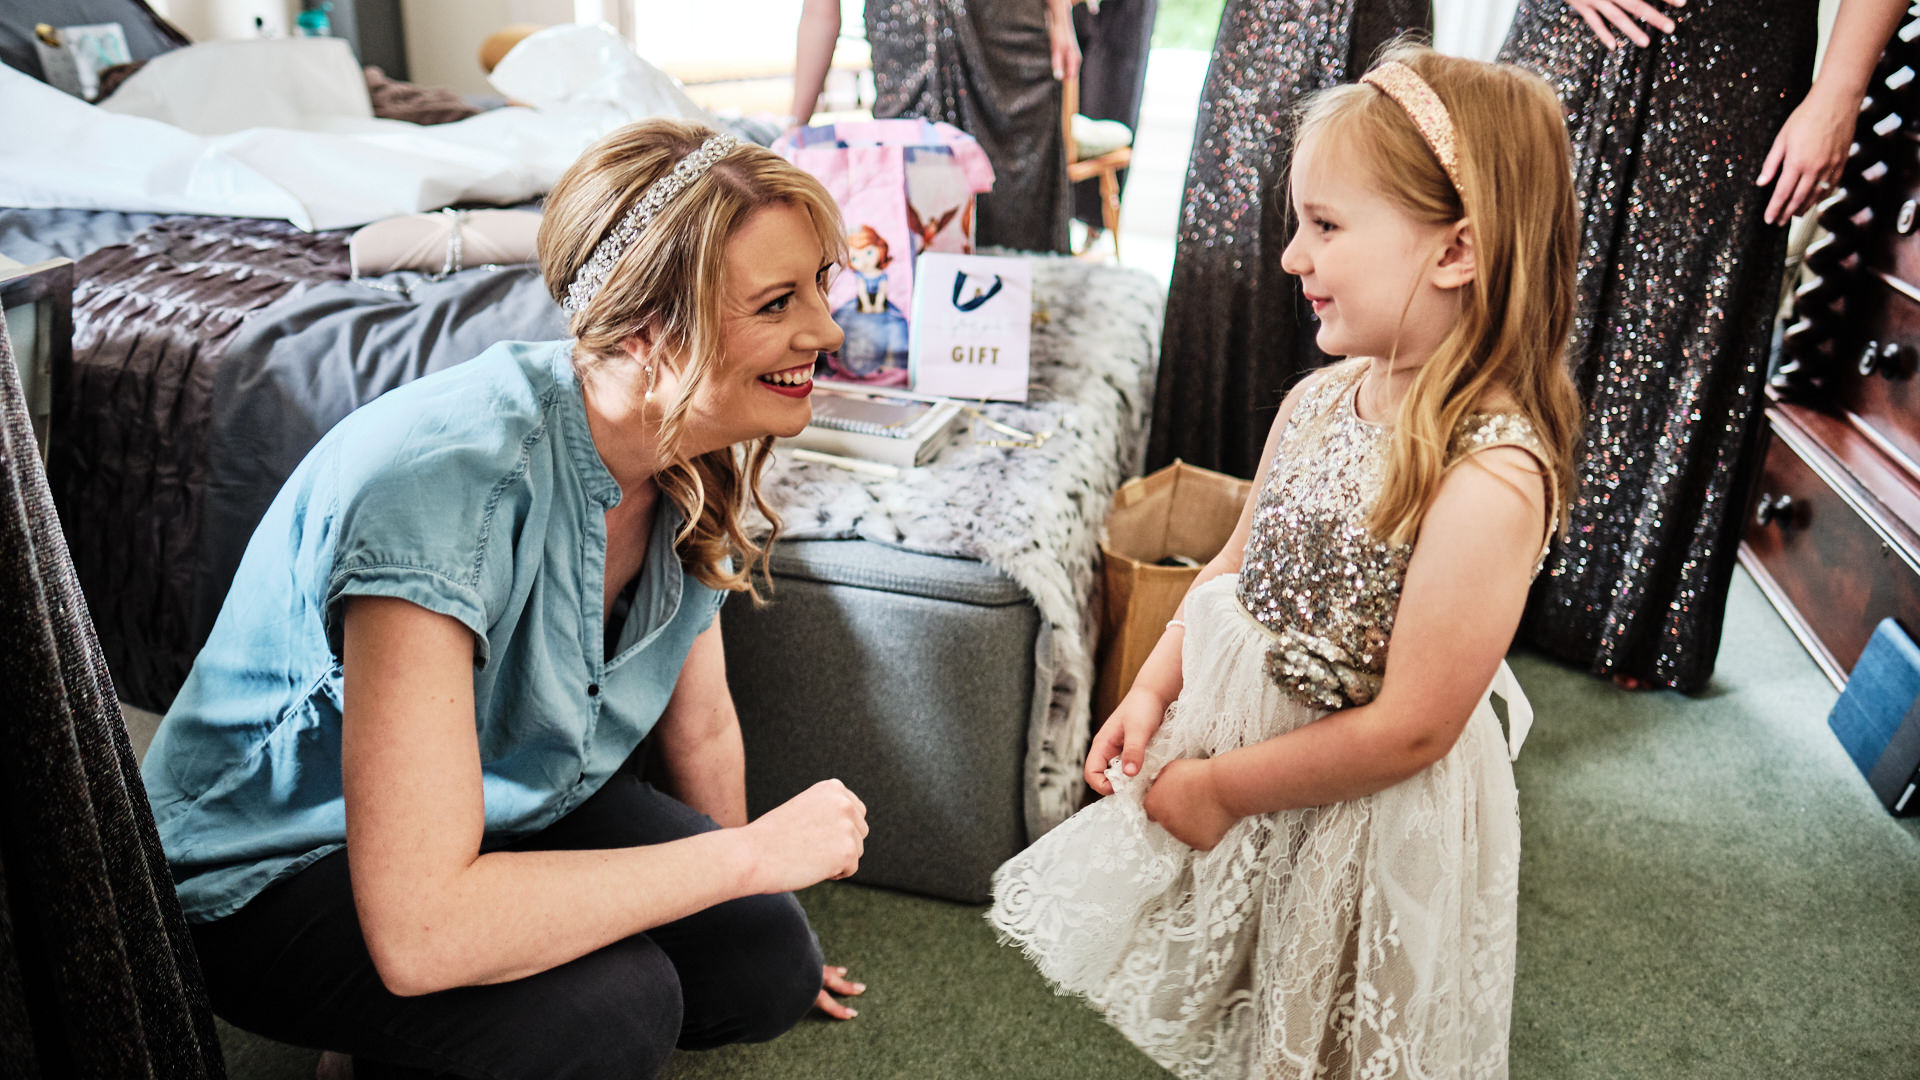 Colour photograph of a bride chatting and smiling to her flower girls as they get ready for the wedding